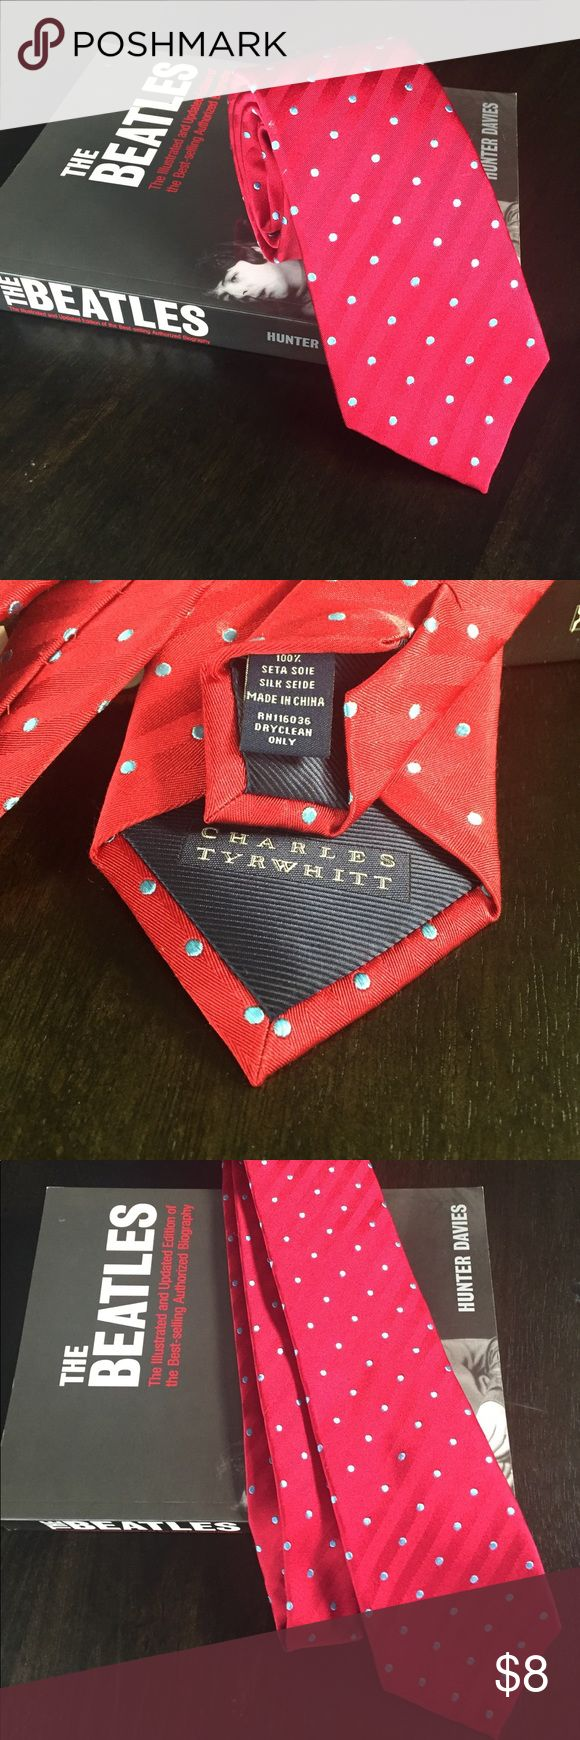 Classy Men's Polka Dot Silk Tie 👔 Bright cherry red with baby blue dots. EUC- by Charles Tyrwhitt. 100% Silk. Charles Tyrwhitt Accessories Ties